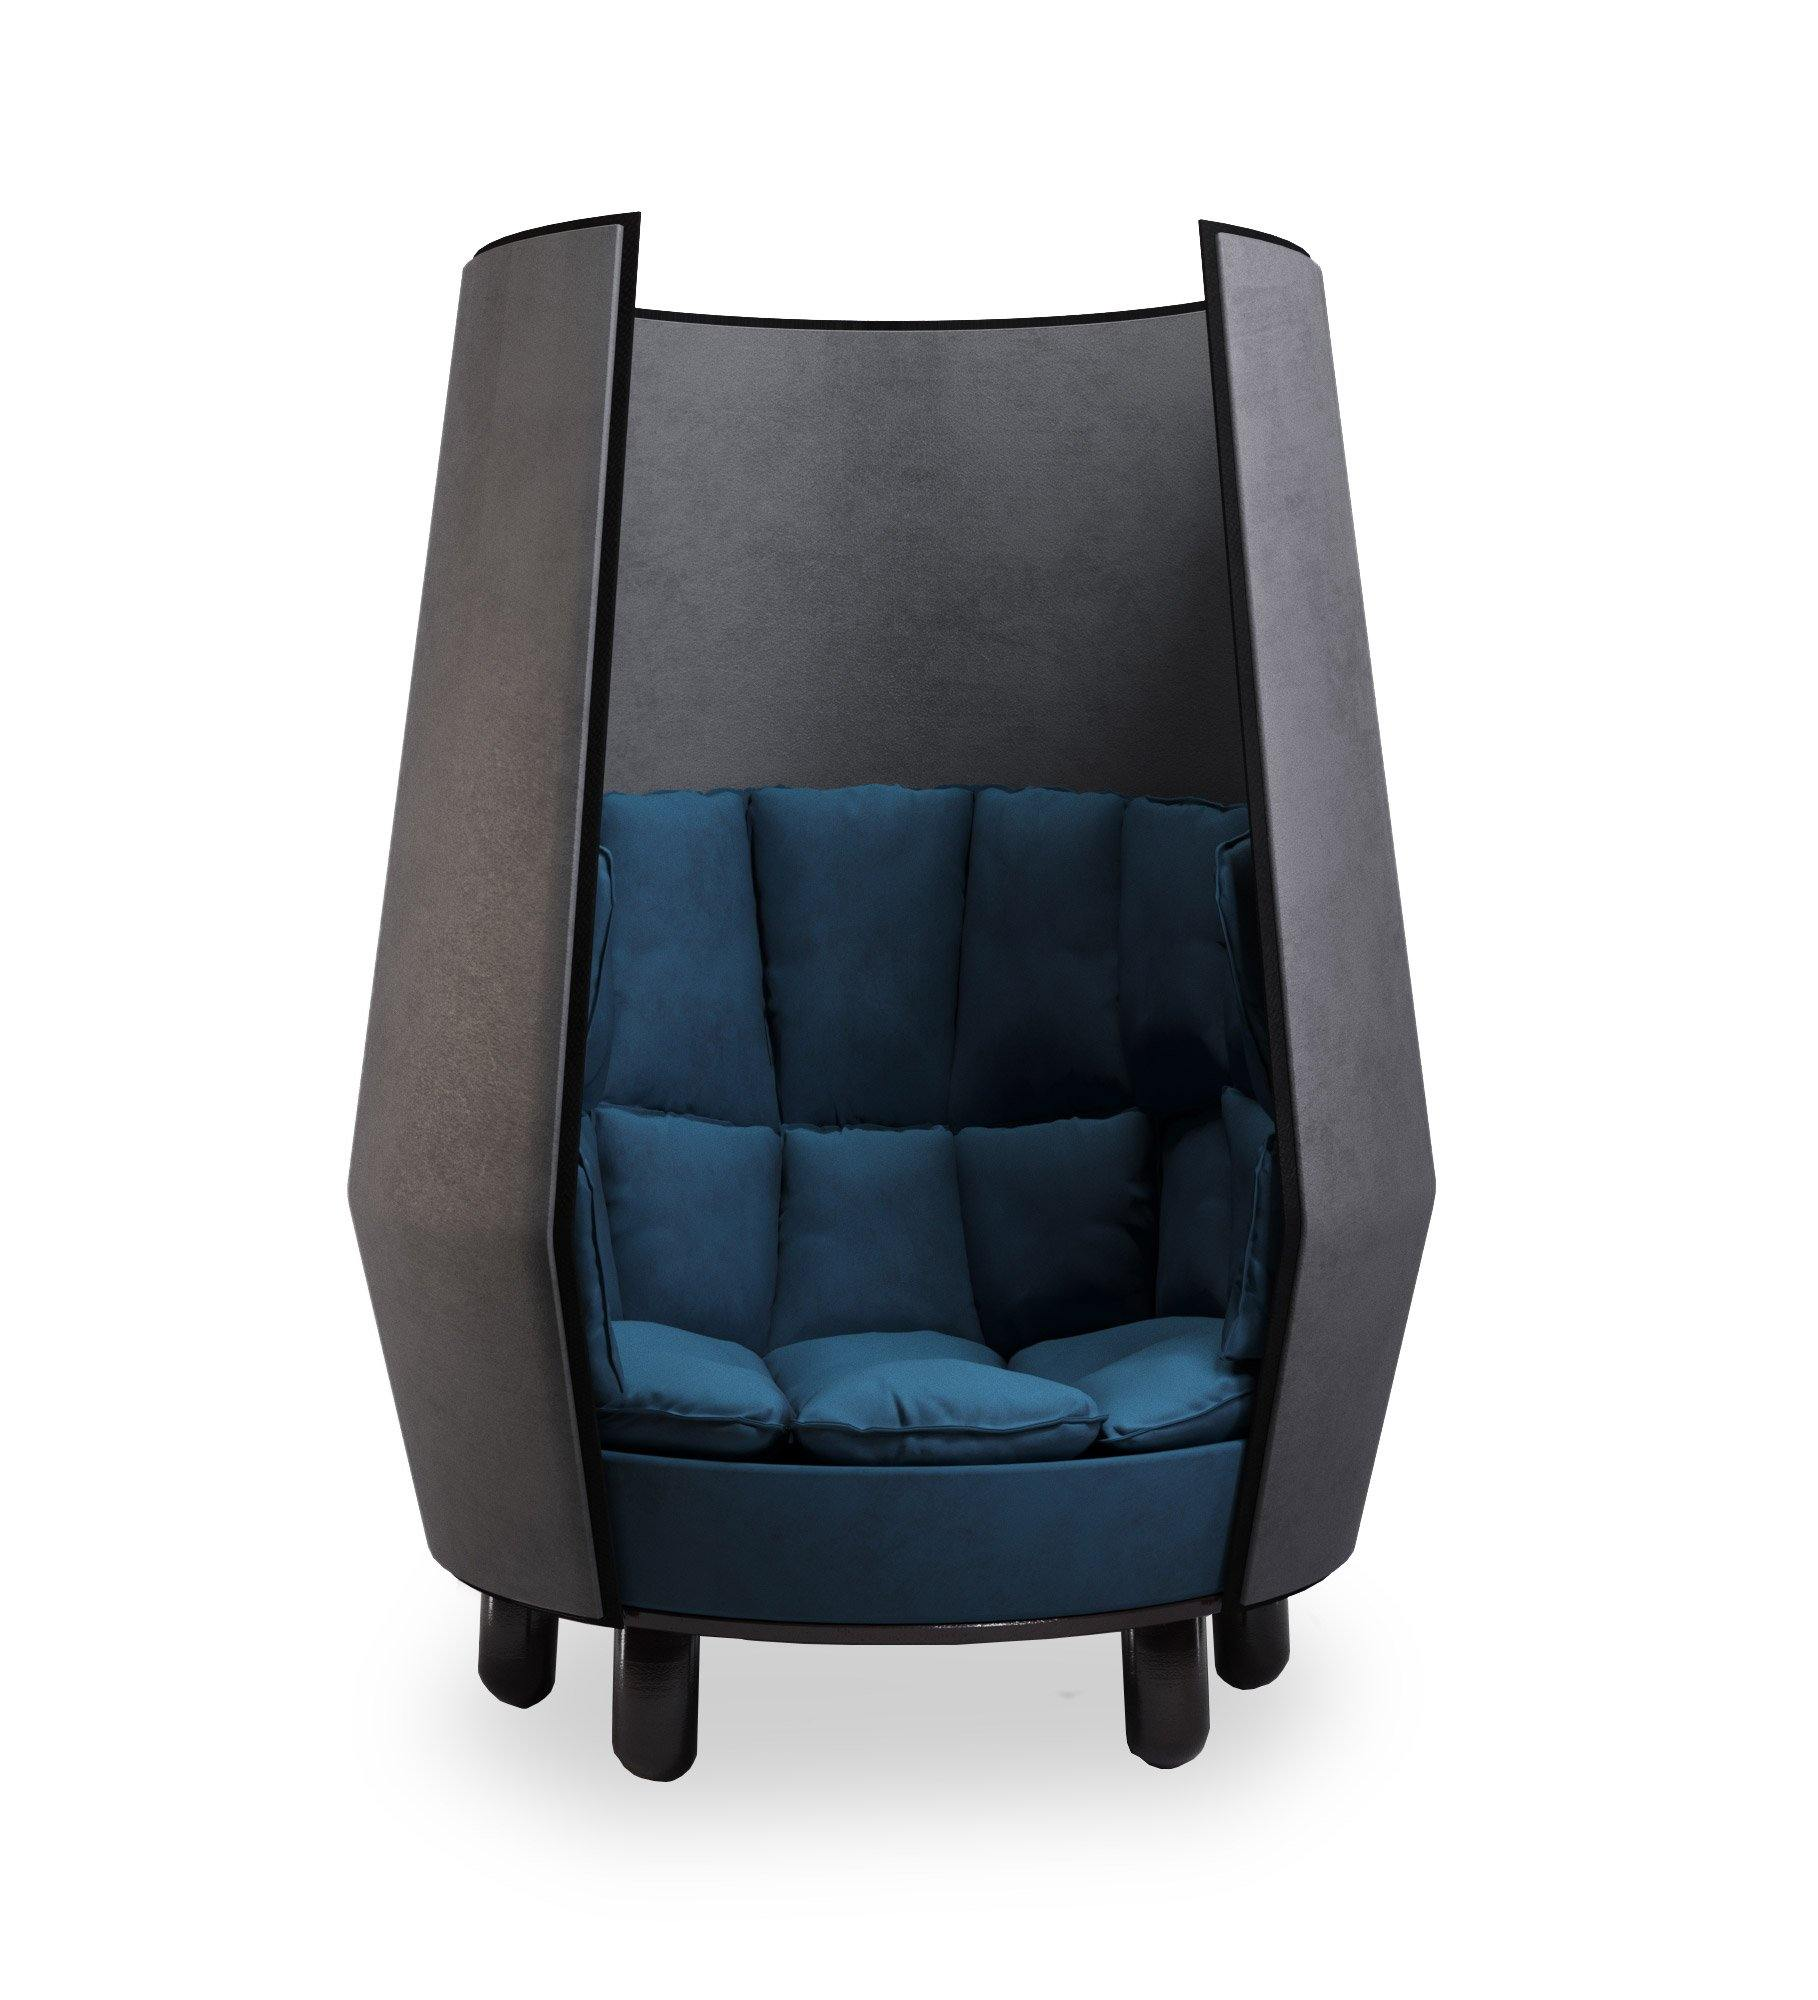 Sergey Makhno Botan Lounge Chair